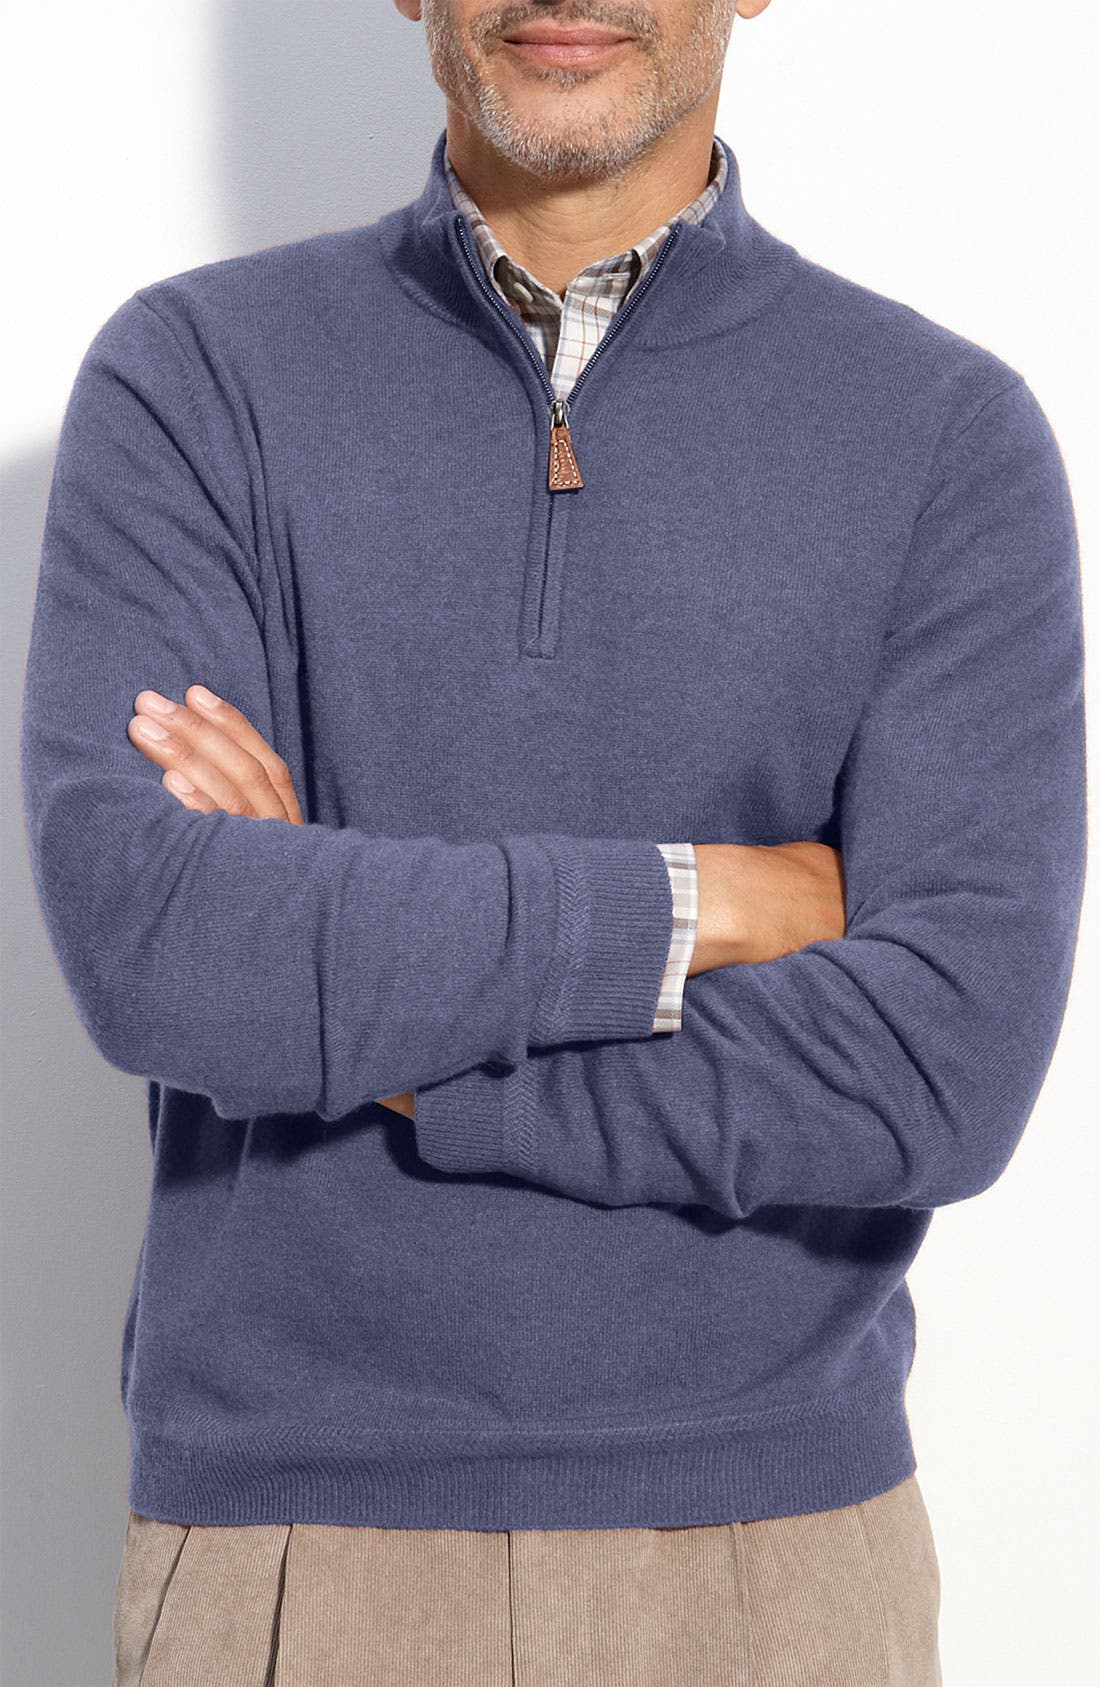 Alternate Image 1 Selected - John W. Nordstrom® Cashmere Sweater